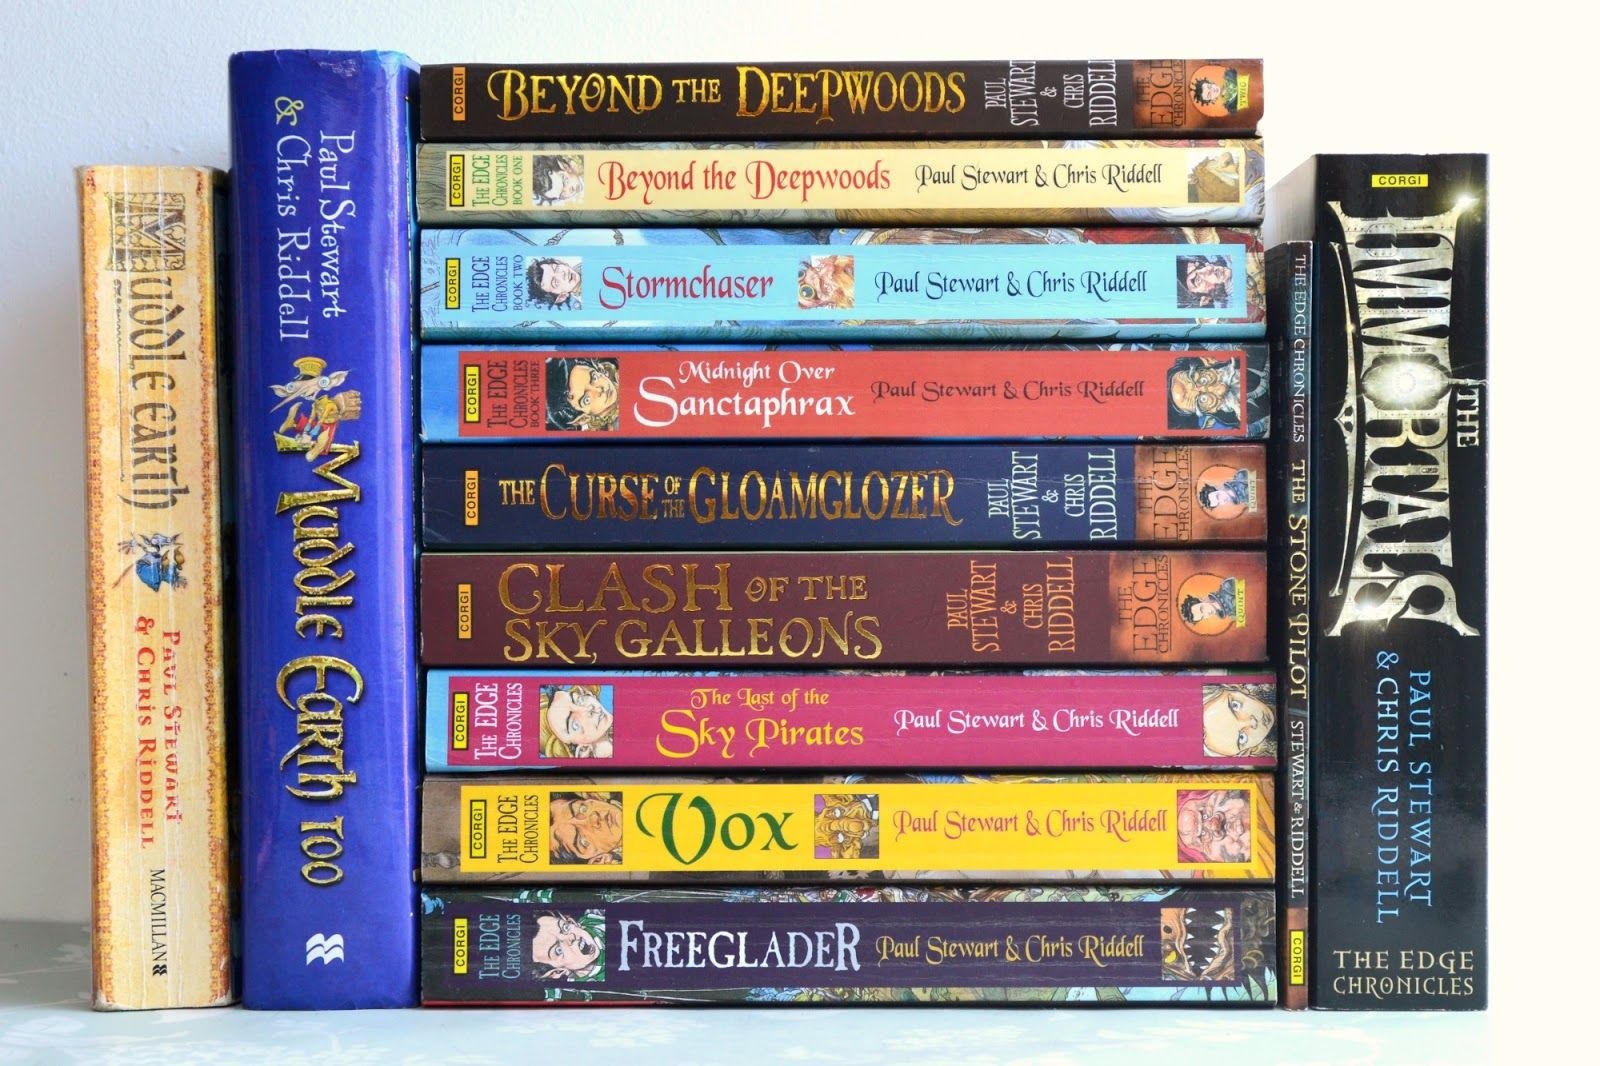 Chris Riddell and Paul Stewart - 12 books